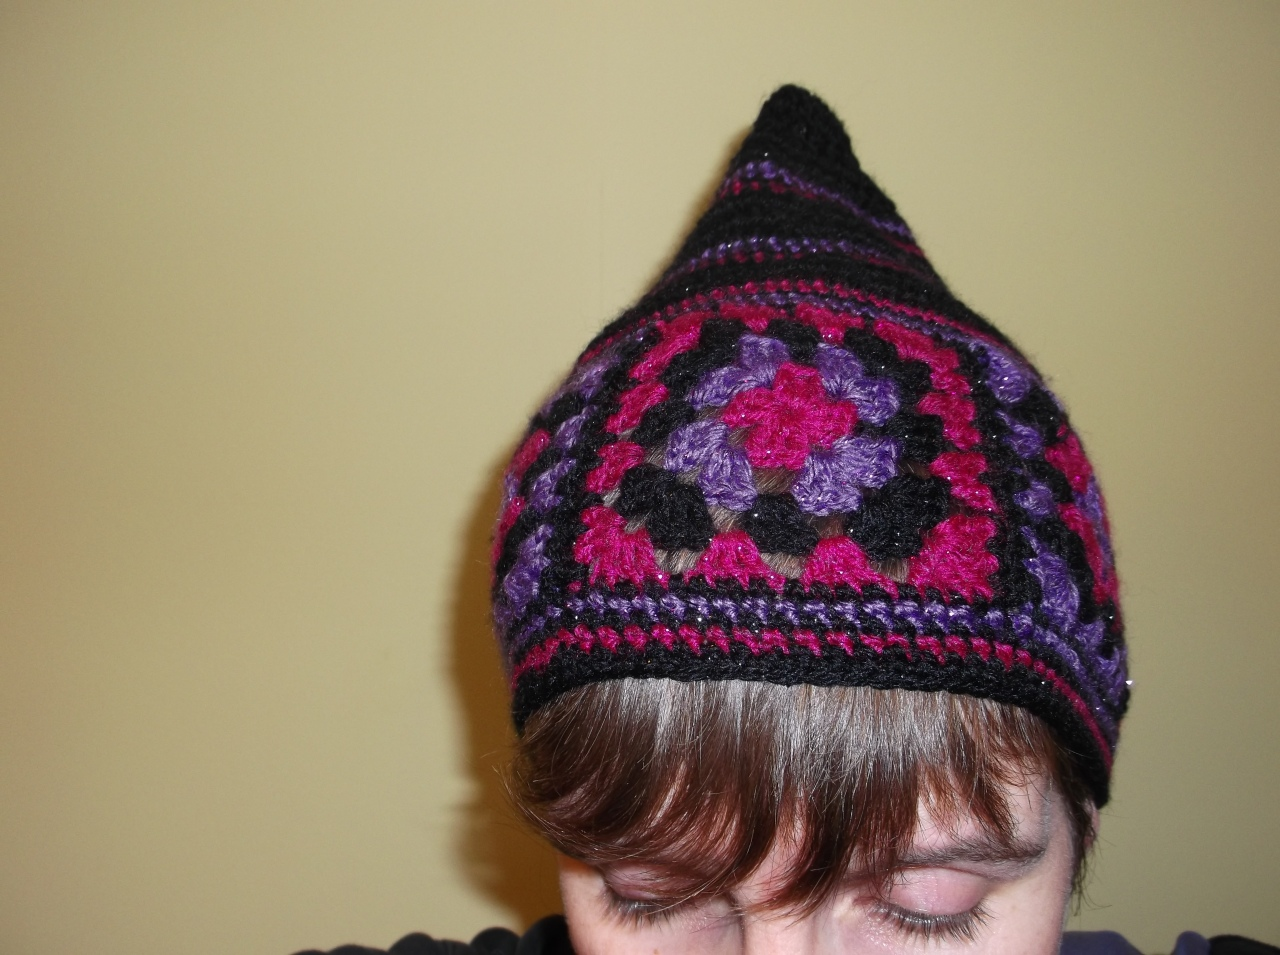 granny square hat unfinished